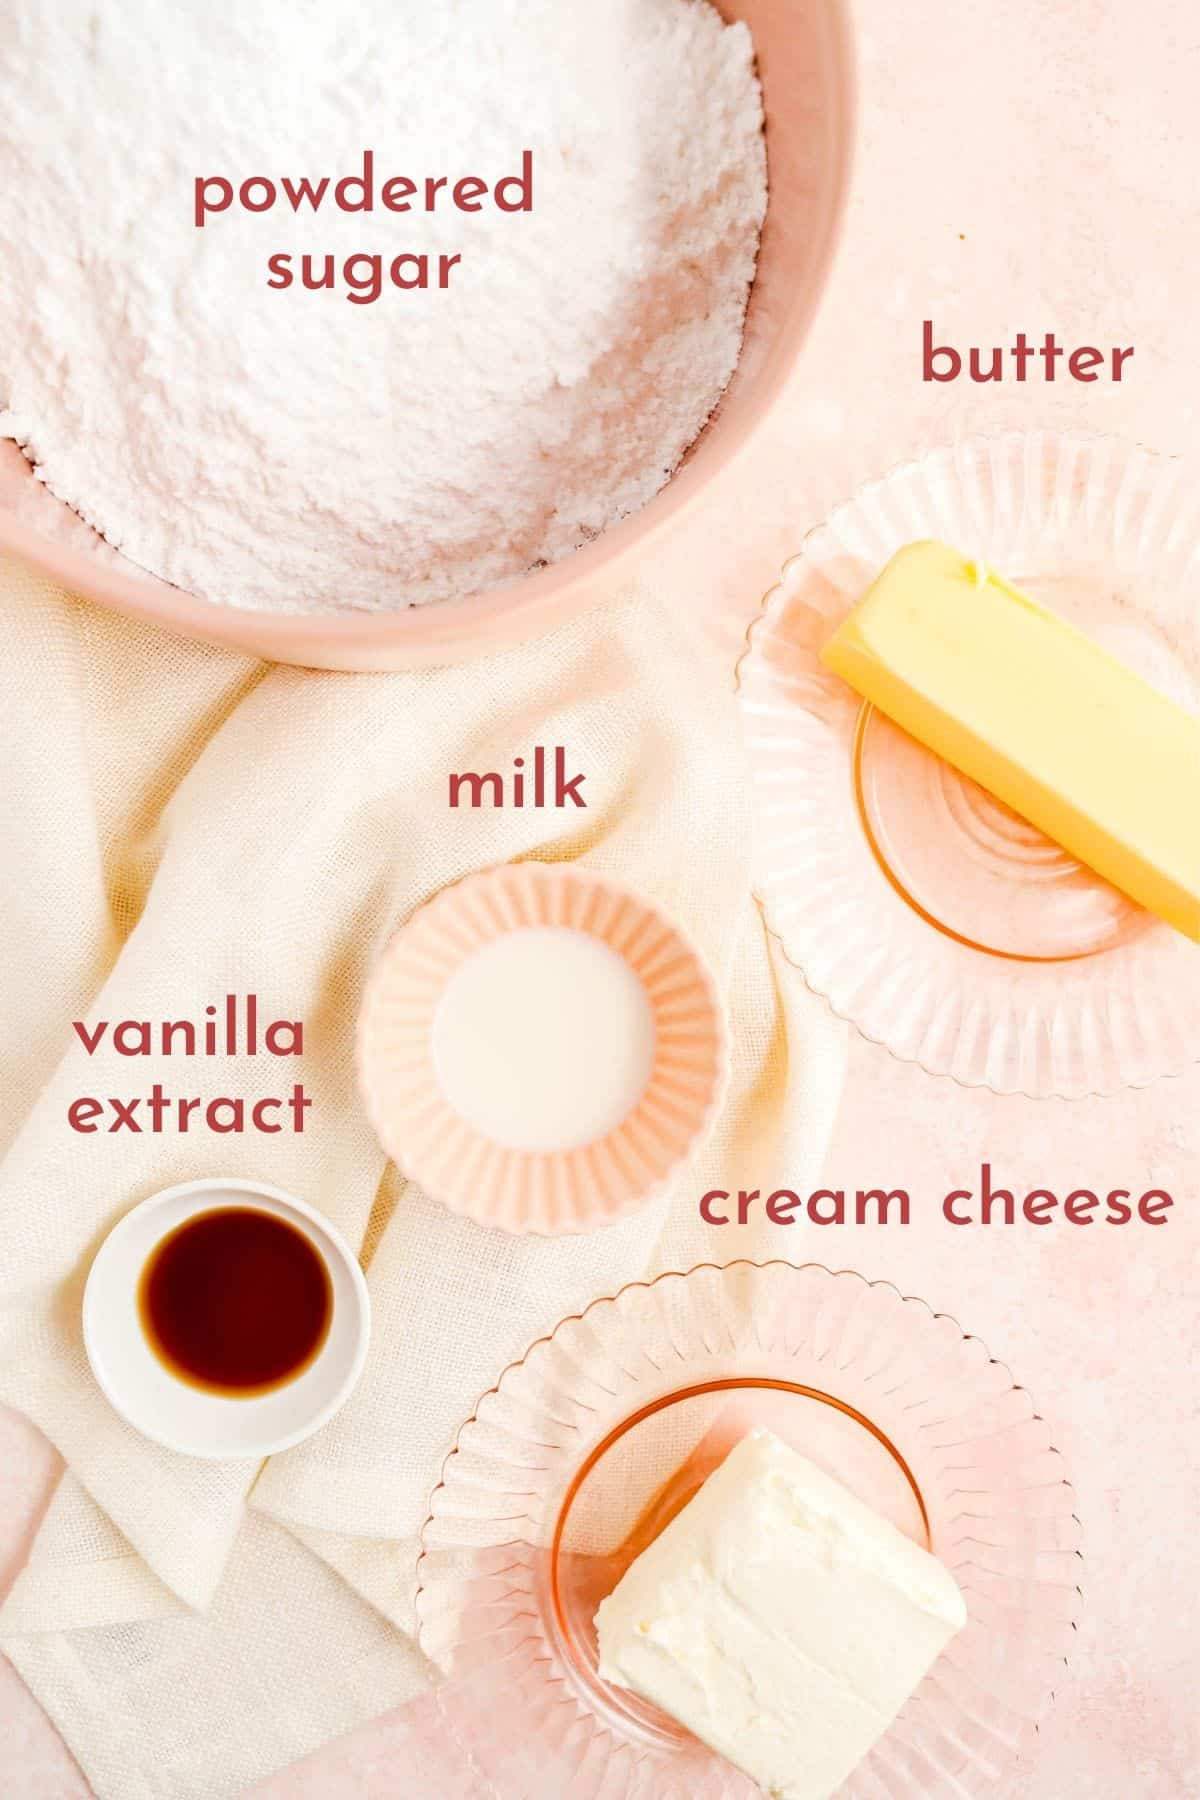 ingredients in bowls and on plates to make cream cheese frosting without heavy cream.